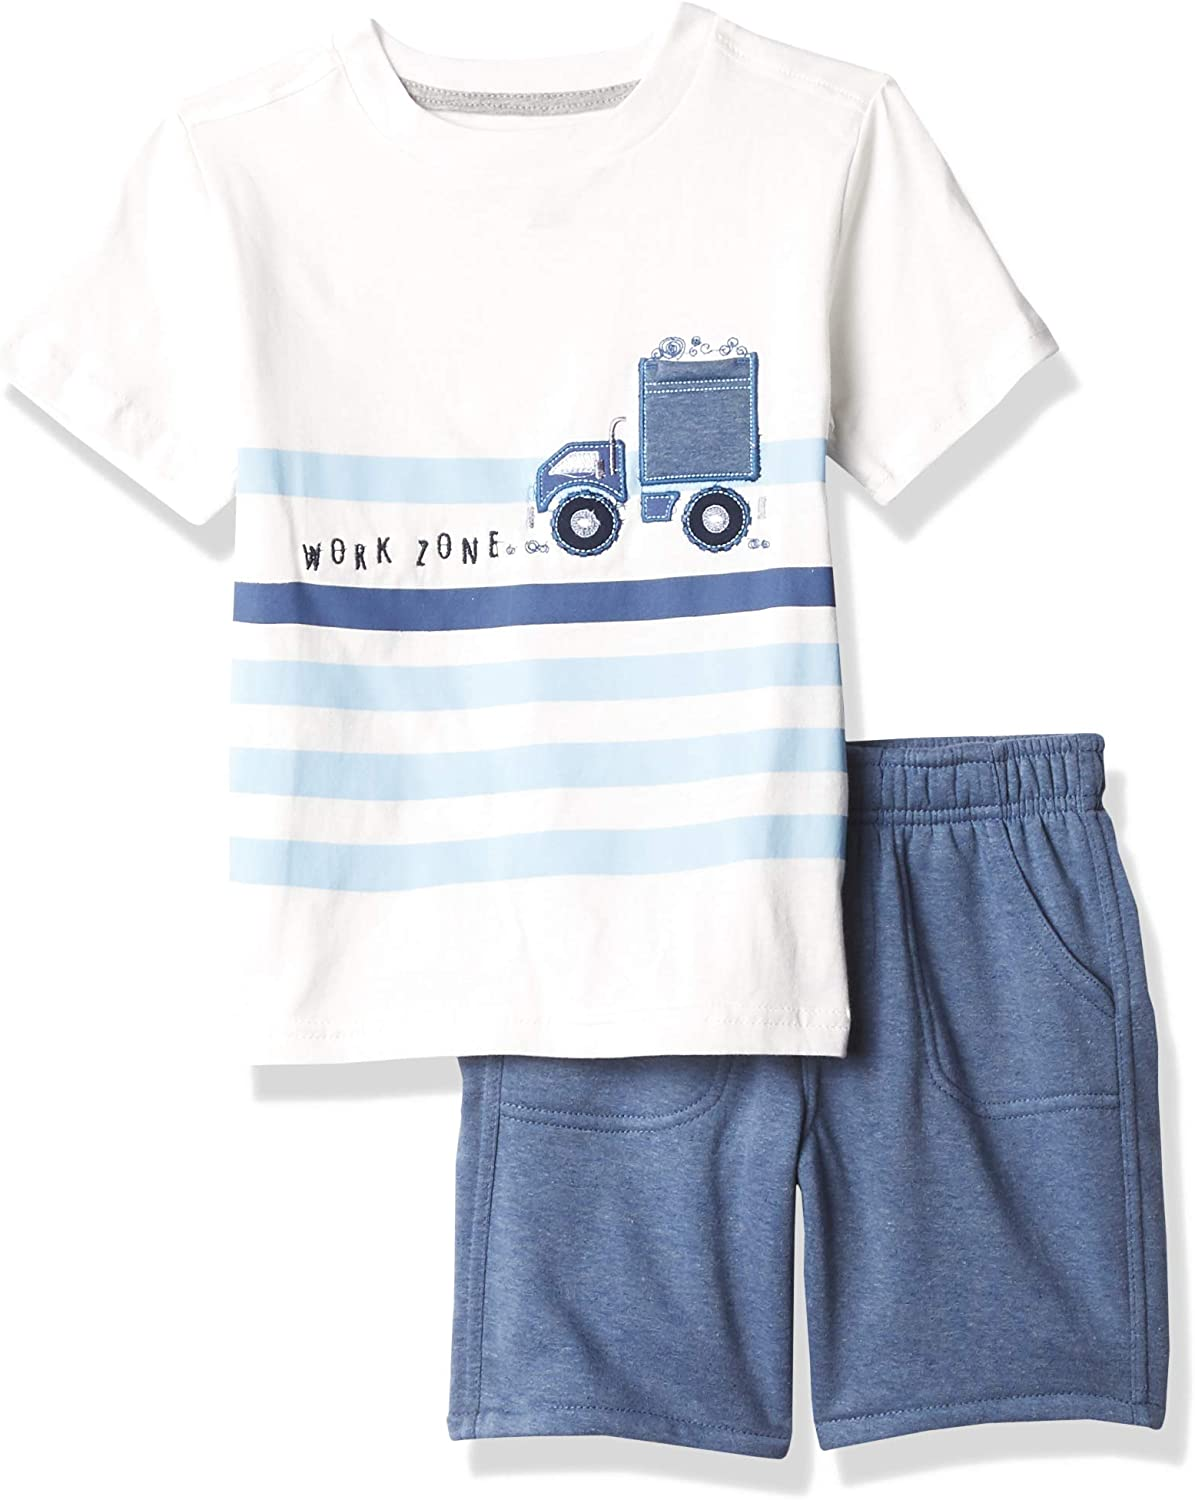 Kids Headquarters boys 2 Pieces Shorts Free Shipping New Set Cheap mail order sales